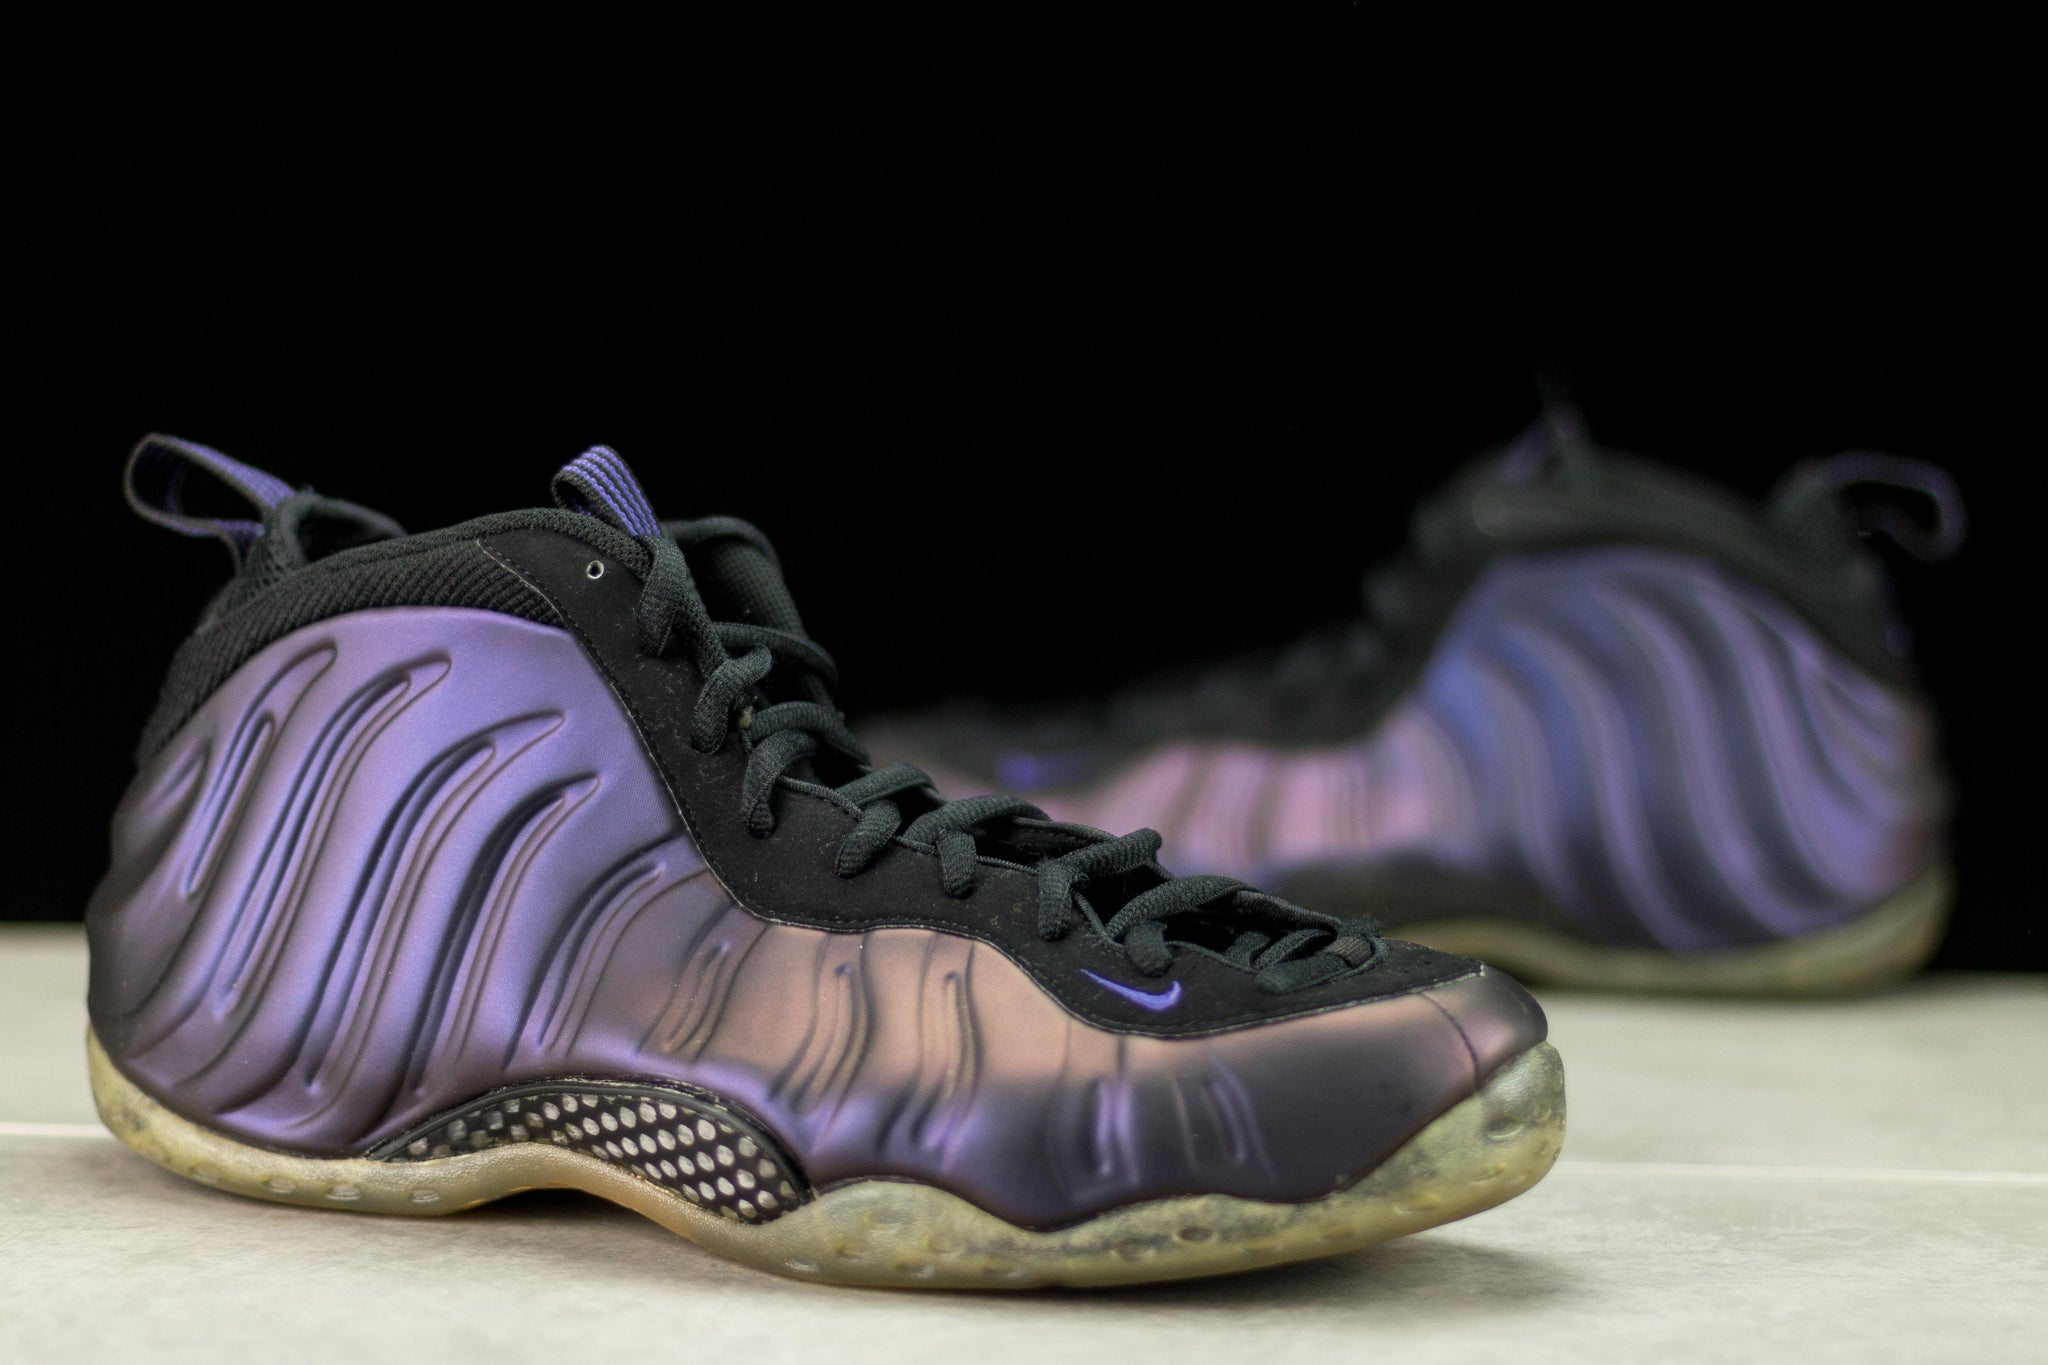 Foamposite One Eggplant (13)